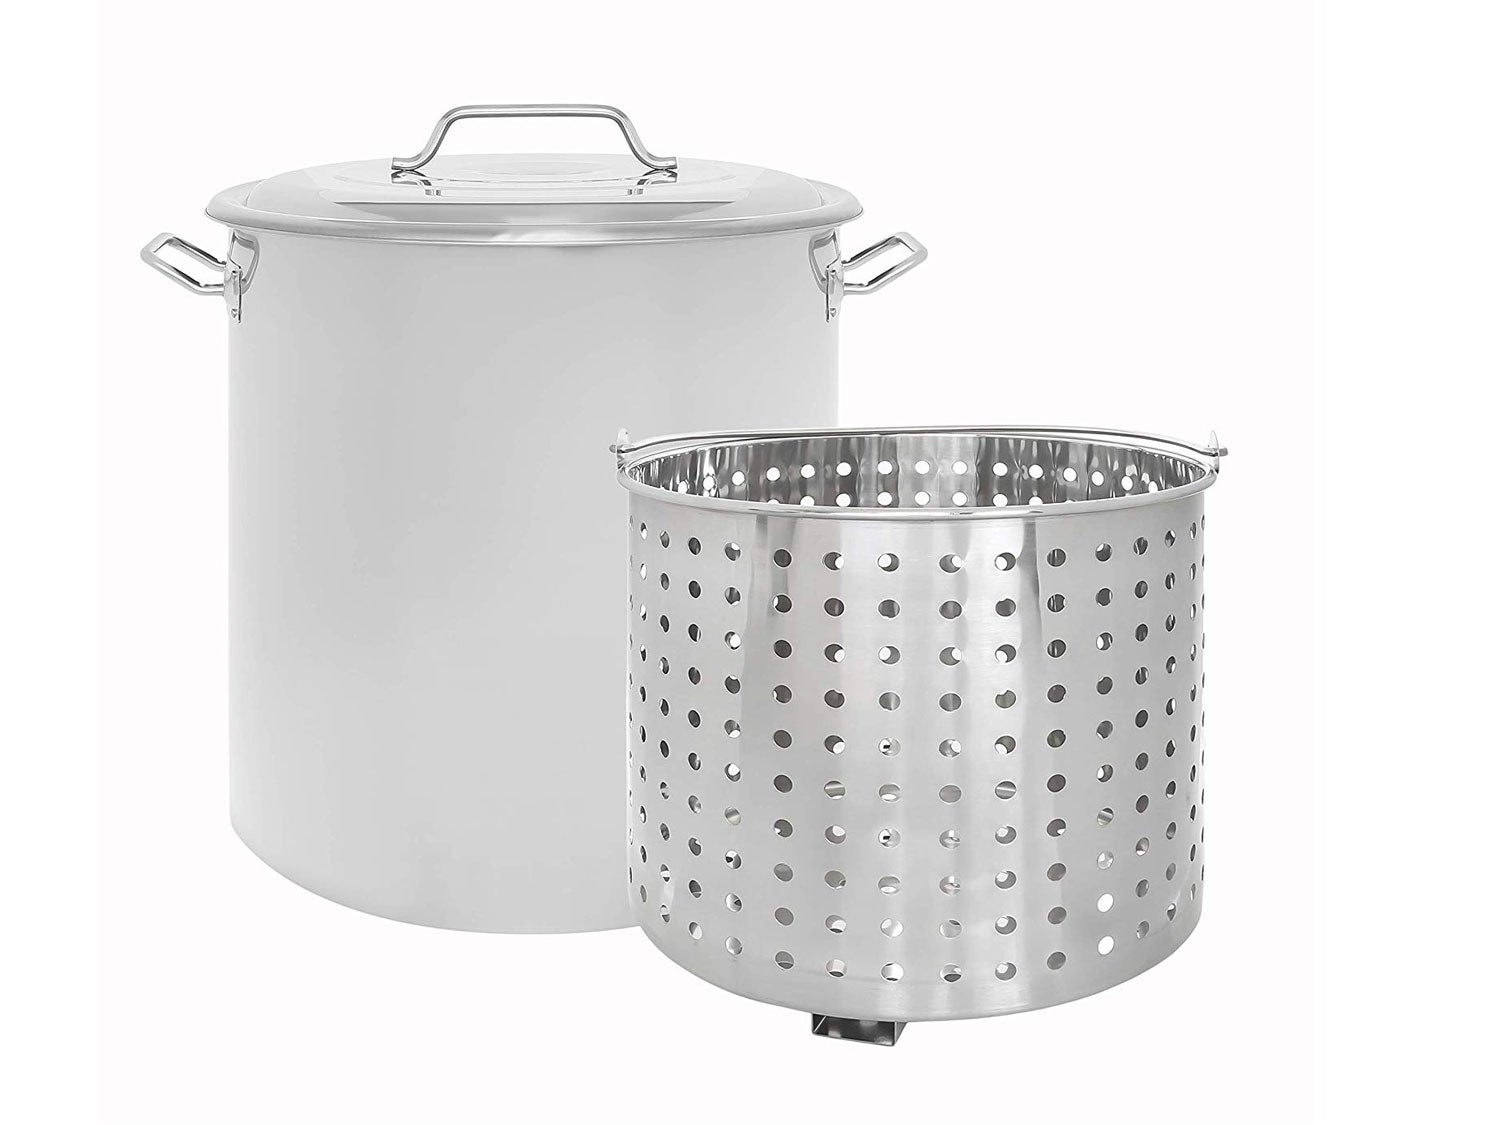 Concord Cookware stainless steel boiling pot